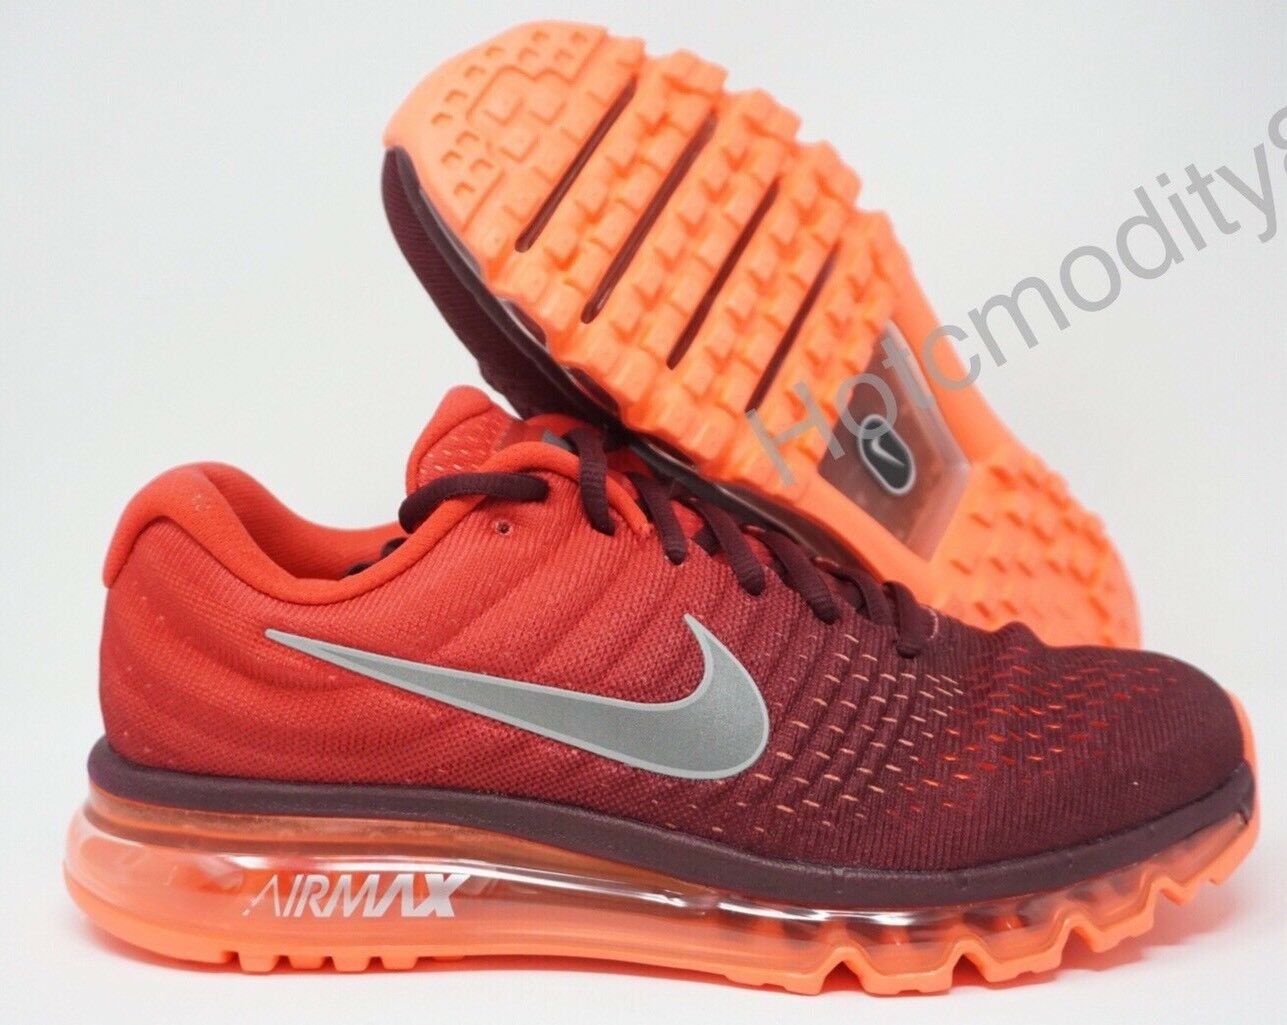 Nike Air Max 2017 Mens Running shoes Maroon White Gym Red 849559-601 Size 10.5